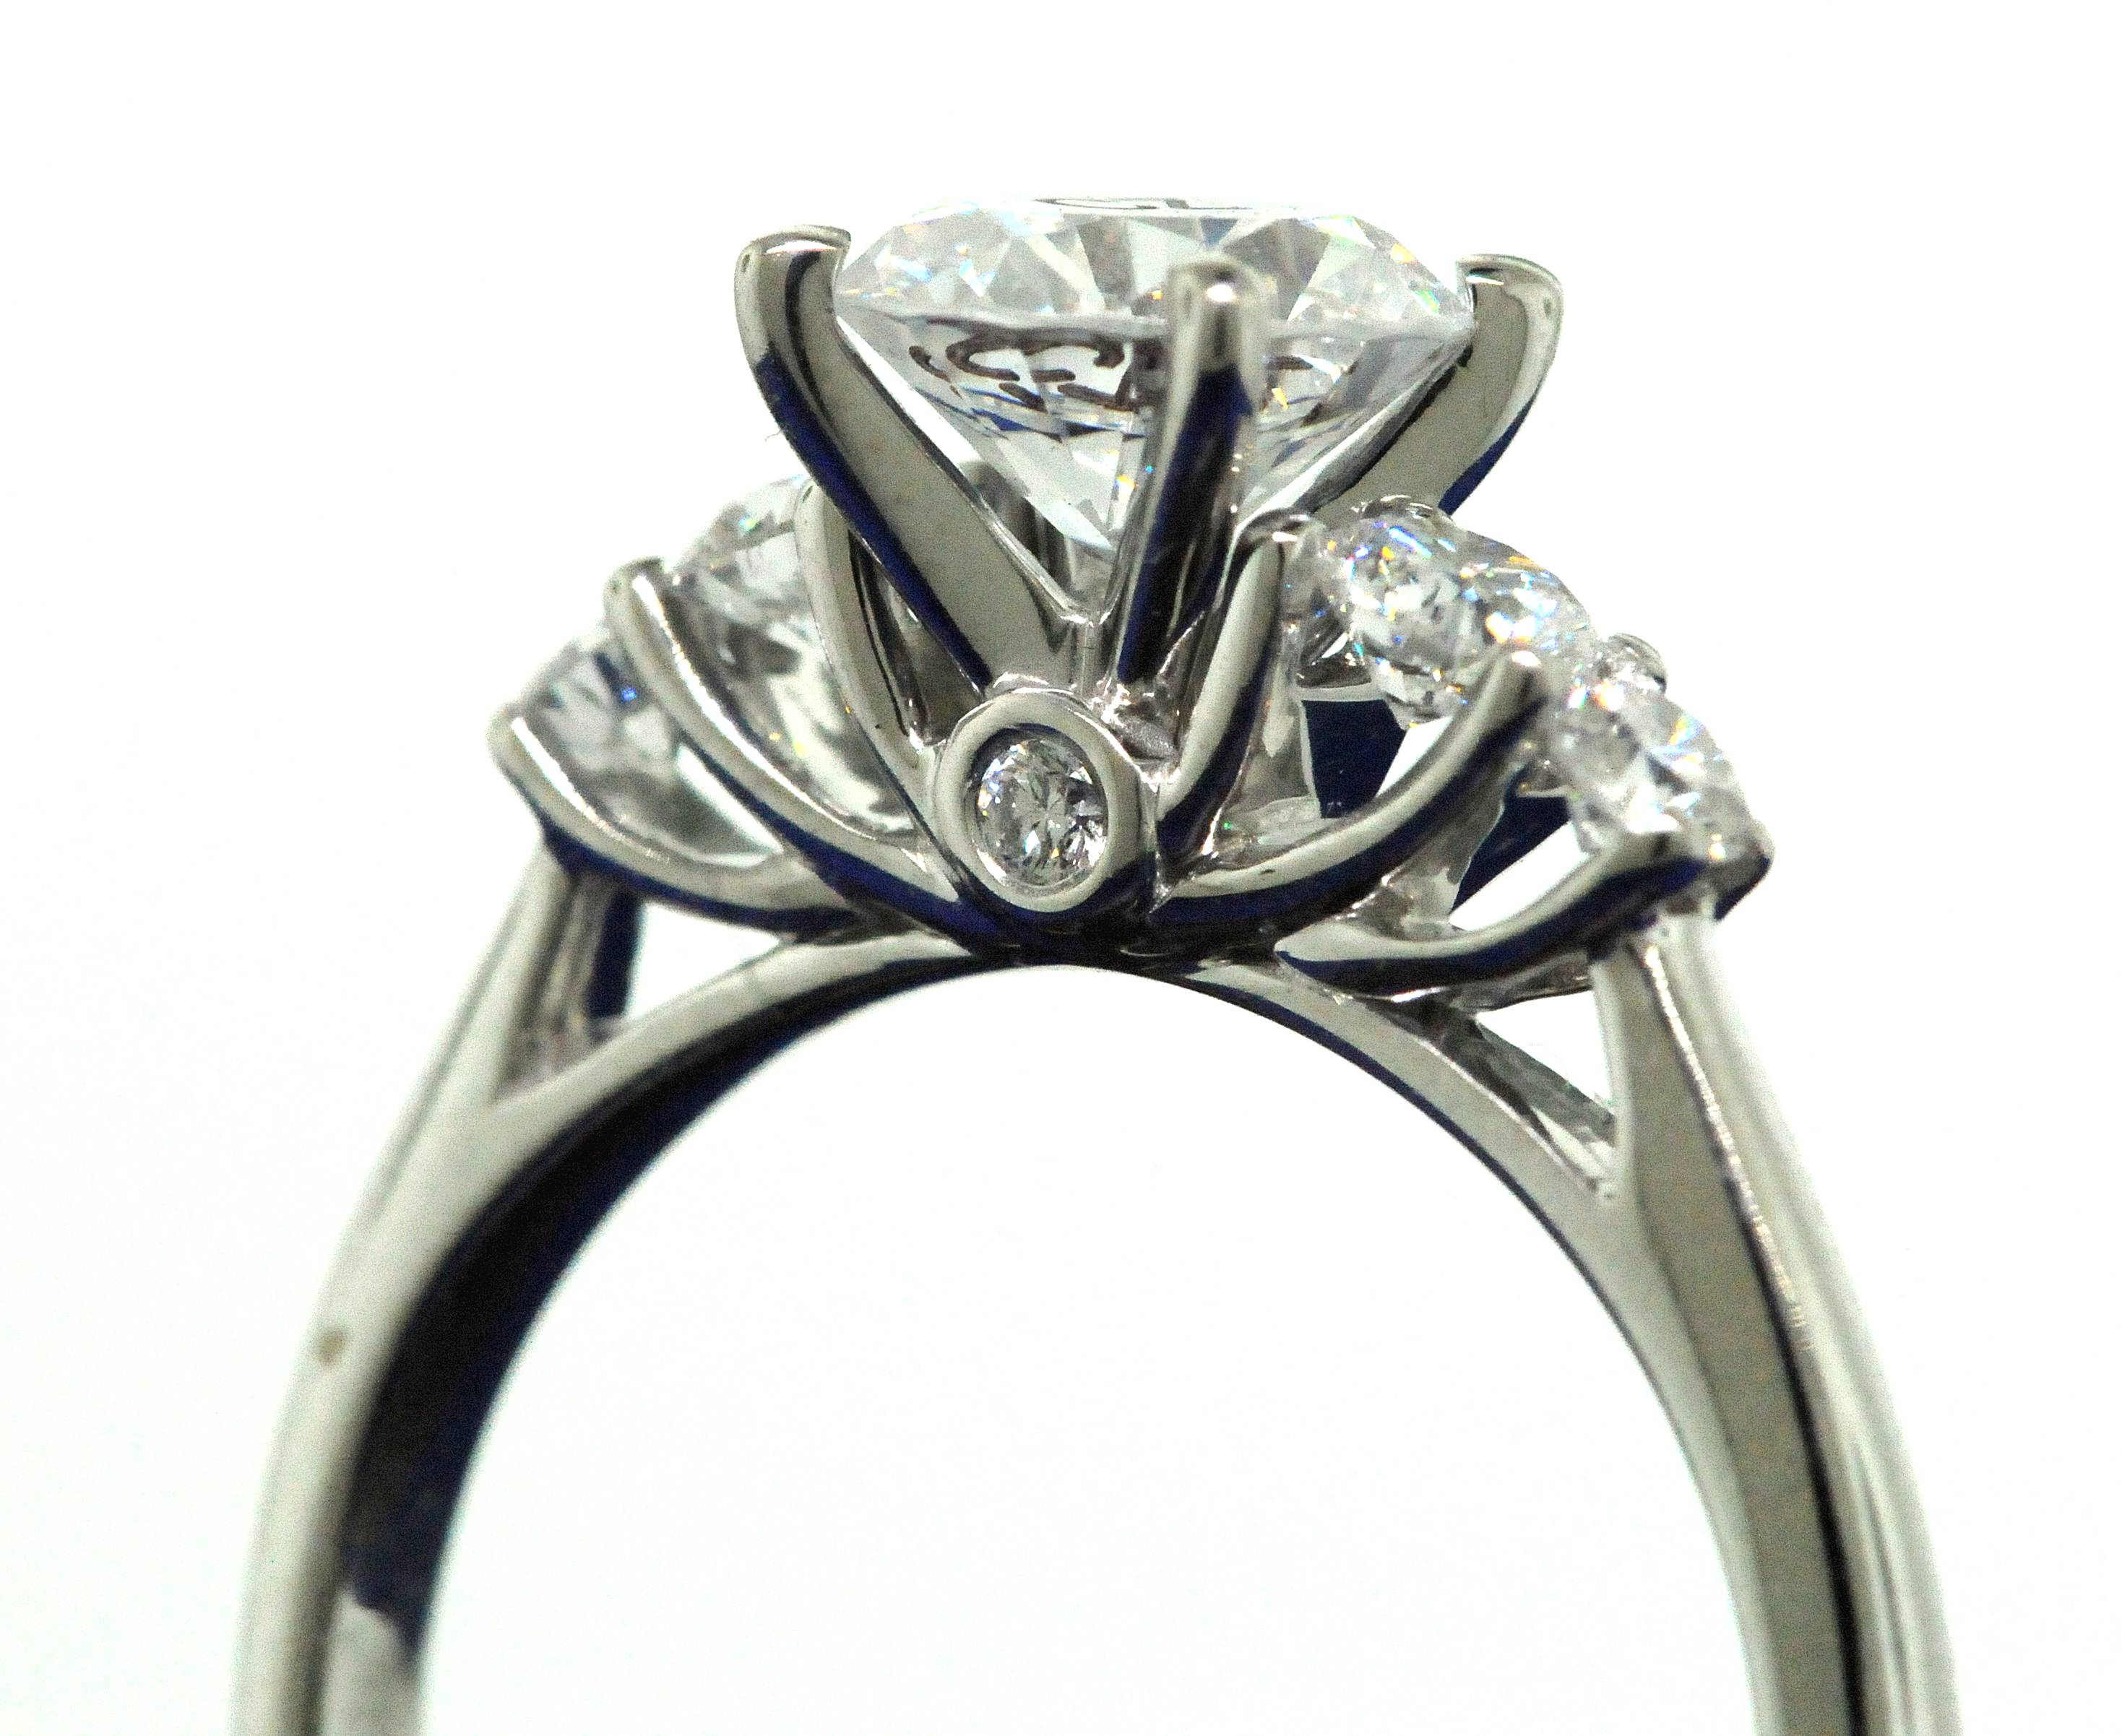 your jewelers own wedding floral engagement beckers rings ring design angle tool scott e kay